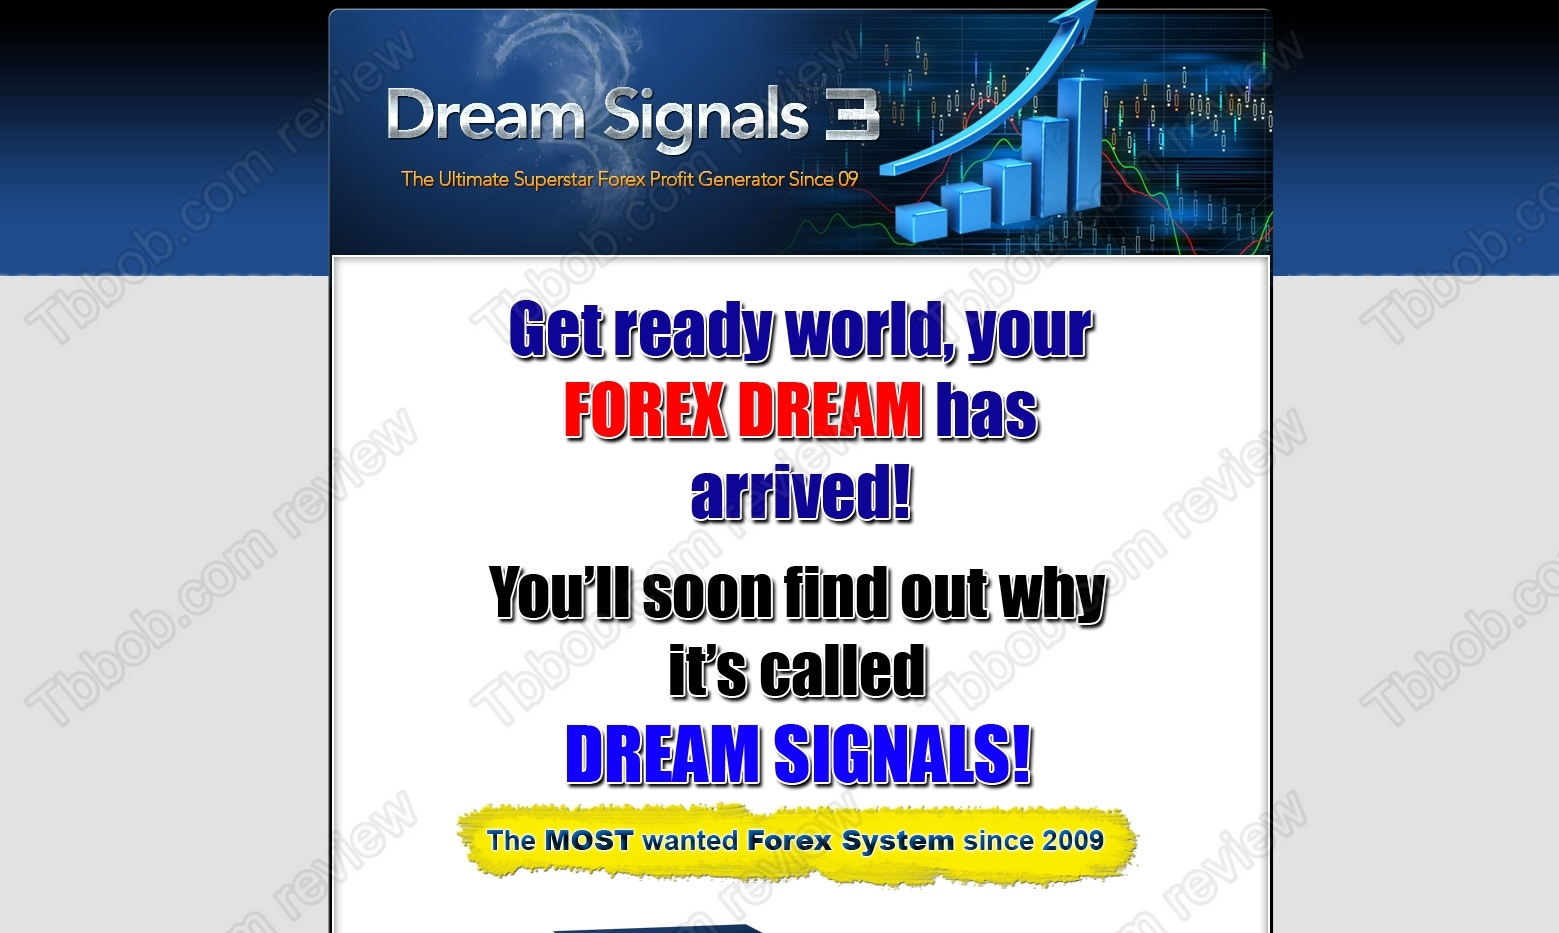 TOTAL SCAM: Dream Signals 3 review